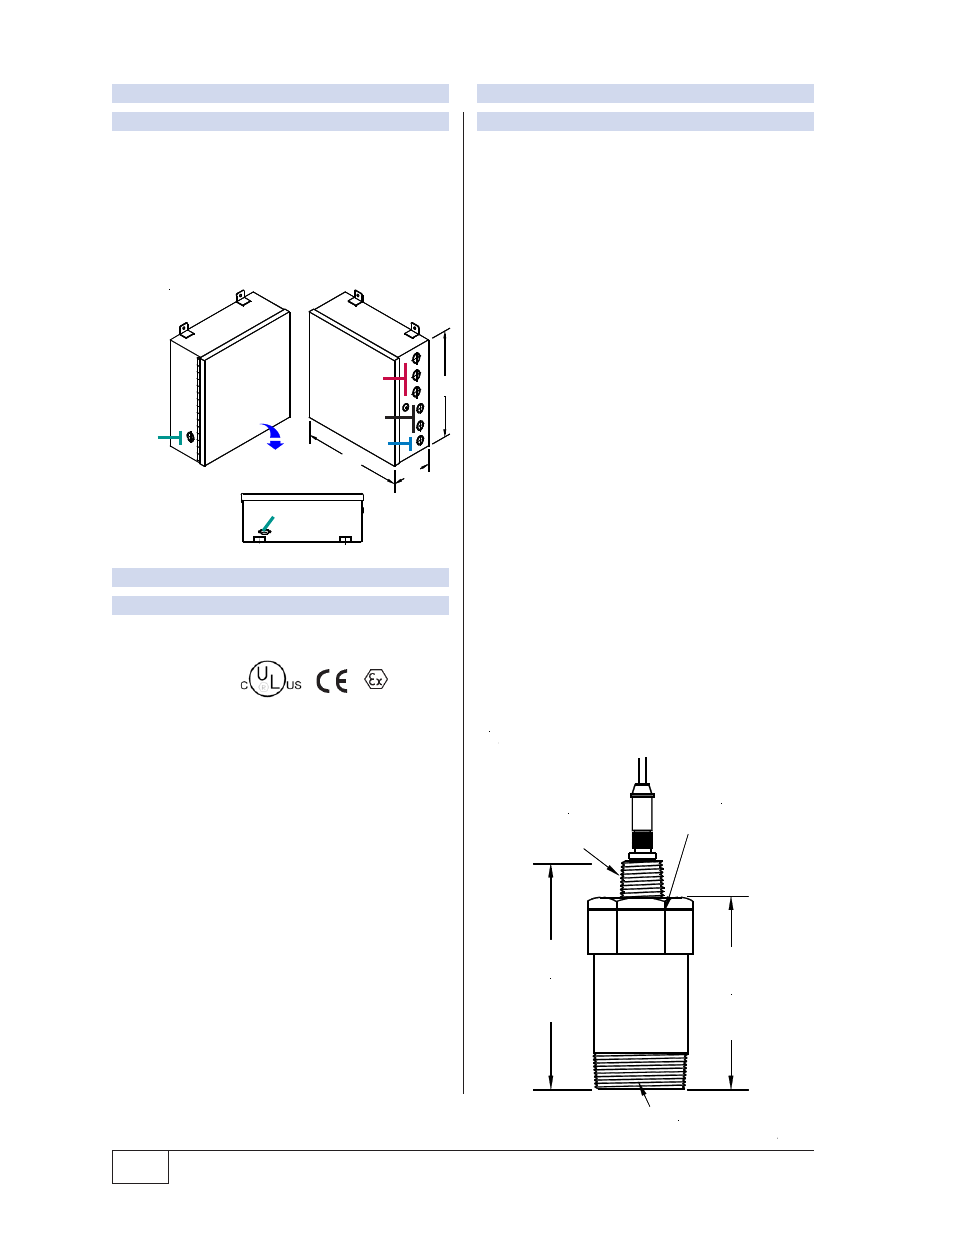 Franklin Fueling Systems TS-LS300 AutoLearn Pressure-Based Electronic Line  Leak Detector System Users Guide User Manual | Page 47 / 52